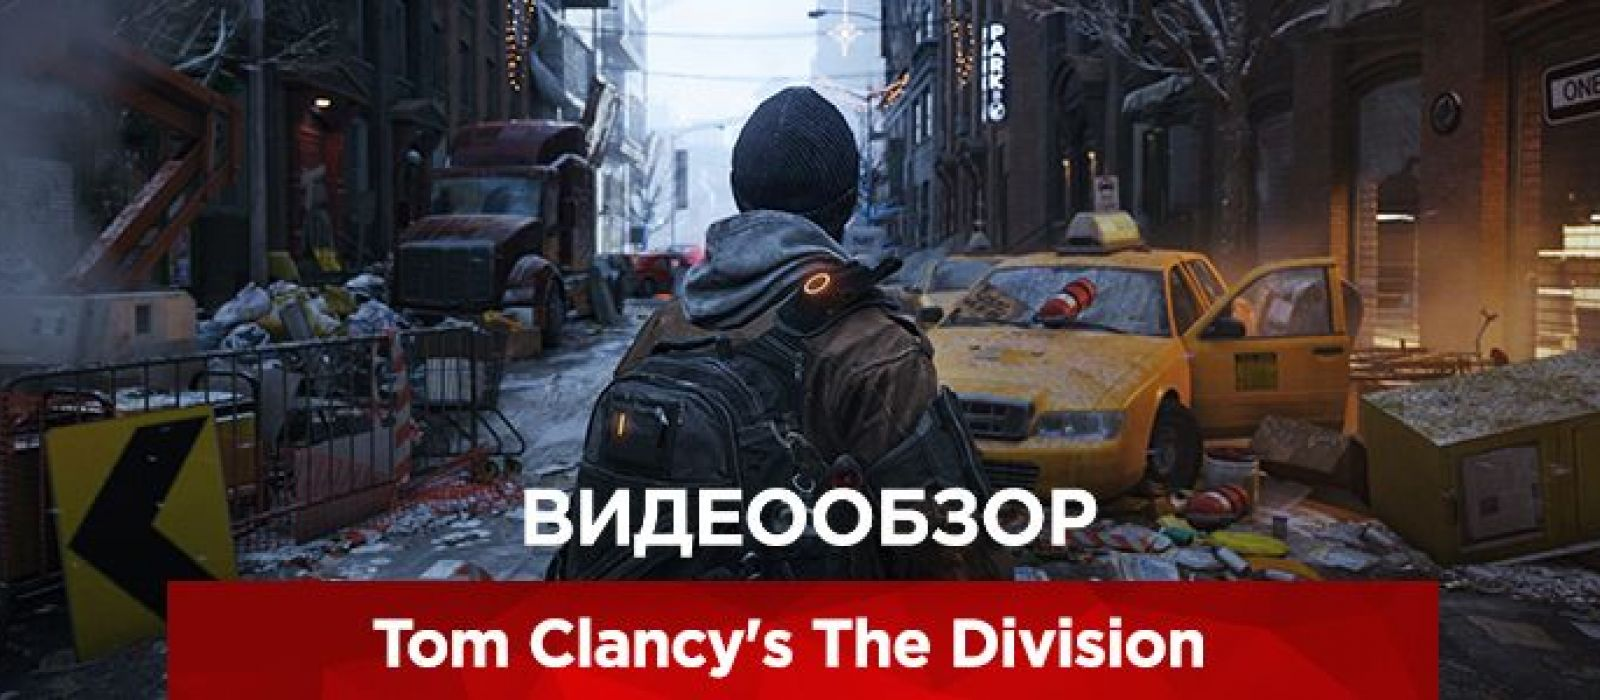 Видеообзор Tom Clancy's The Division